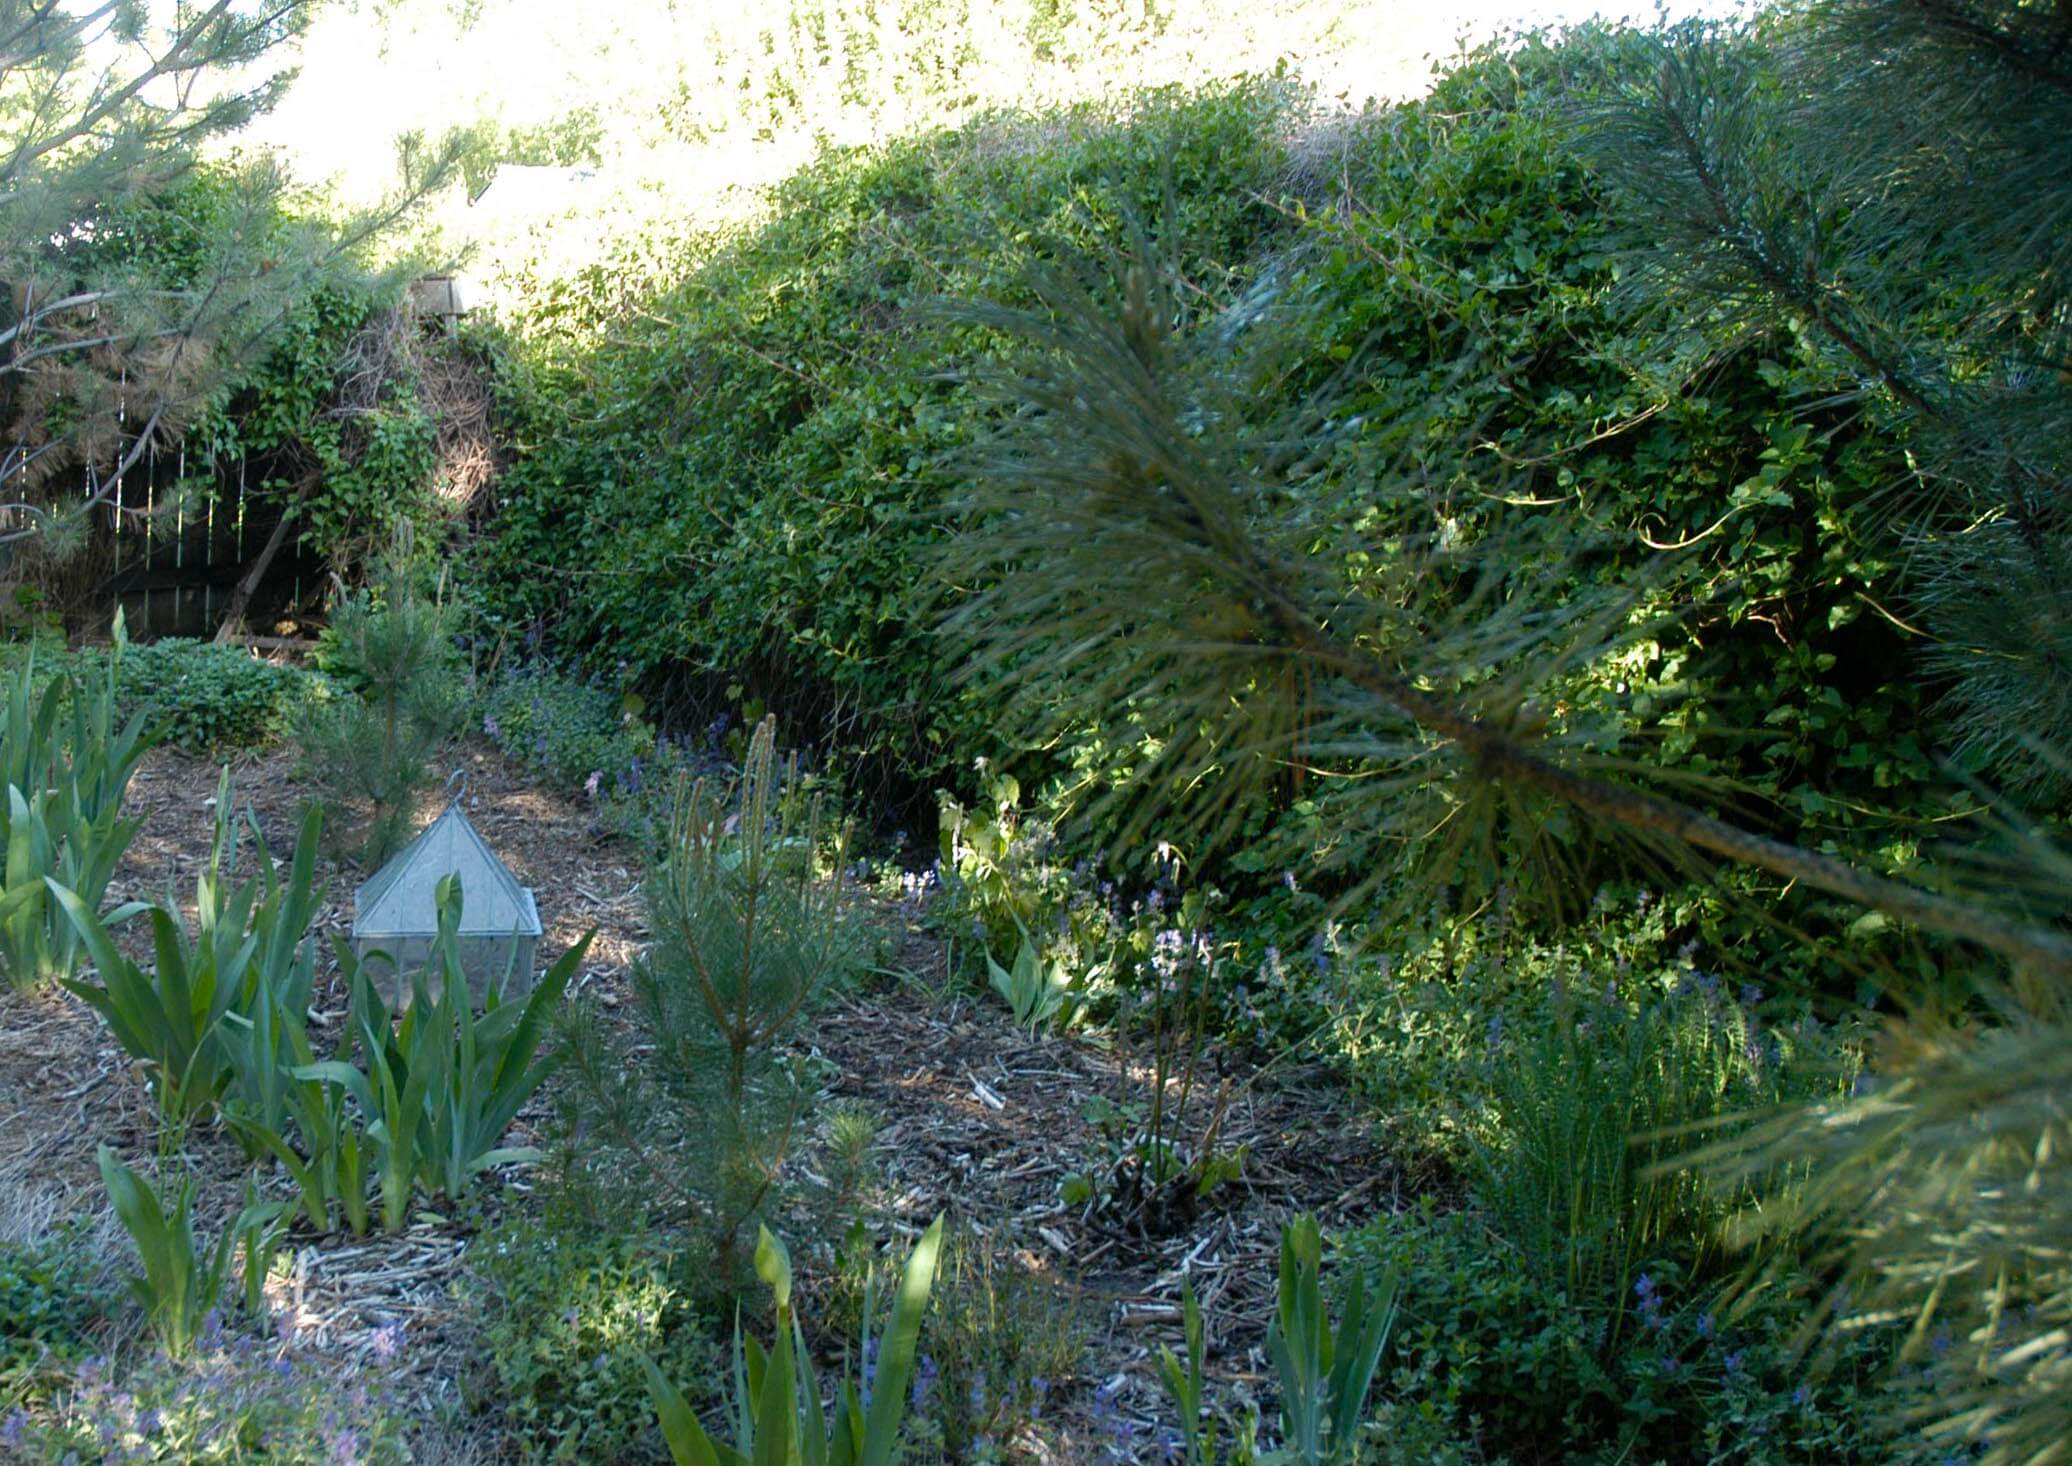 This photograph, also taken in May 2014, shows the silver lace planted on the other side of the pine...